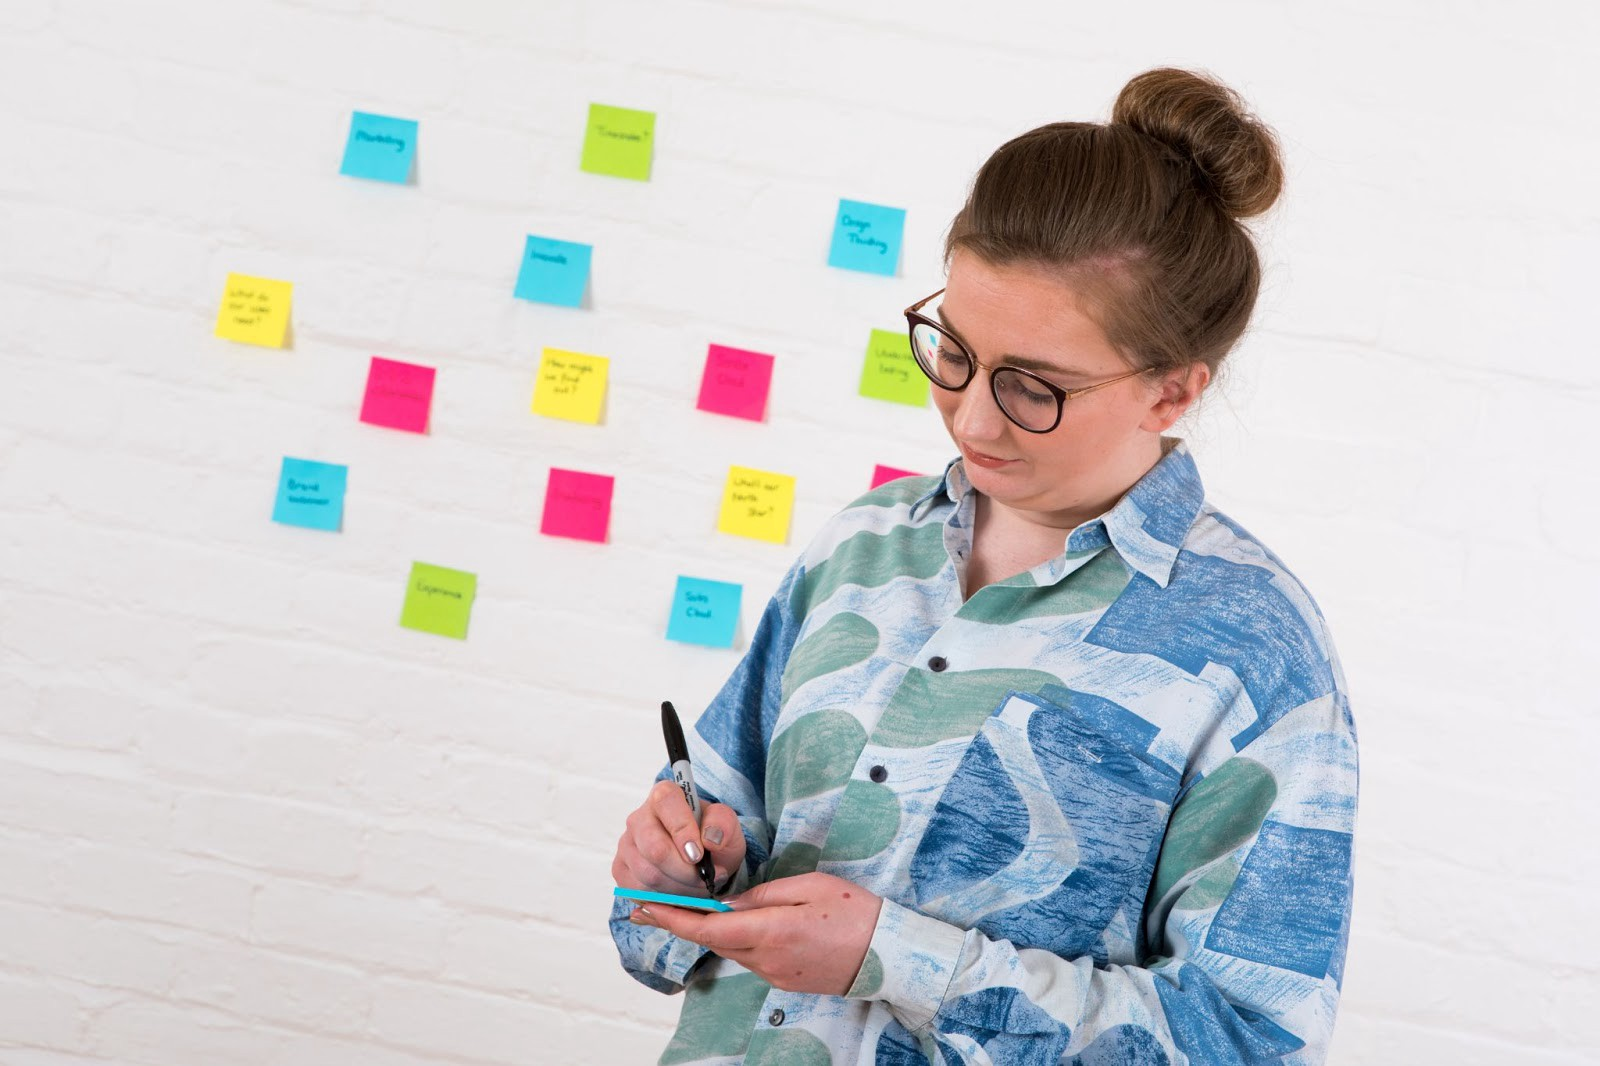 Angela standing in front of a white wall with colorful sticky notes on it. She is writing with a sharpie on a blue note.